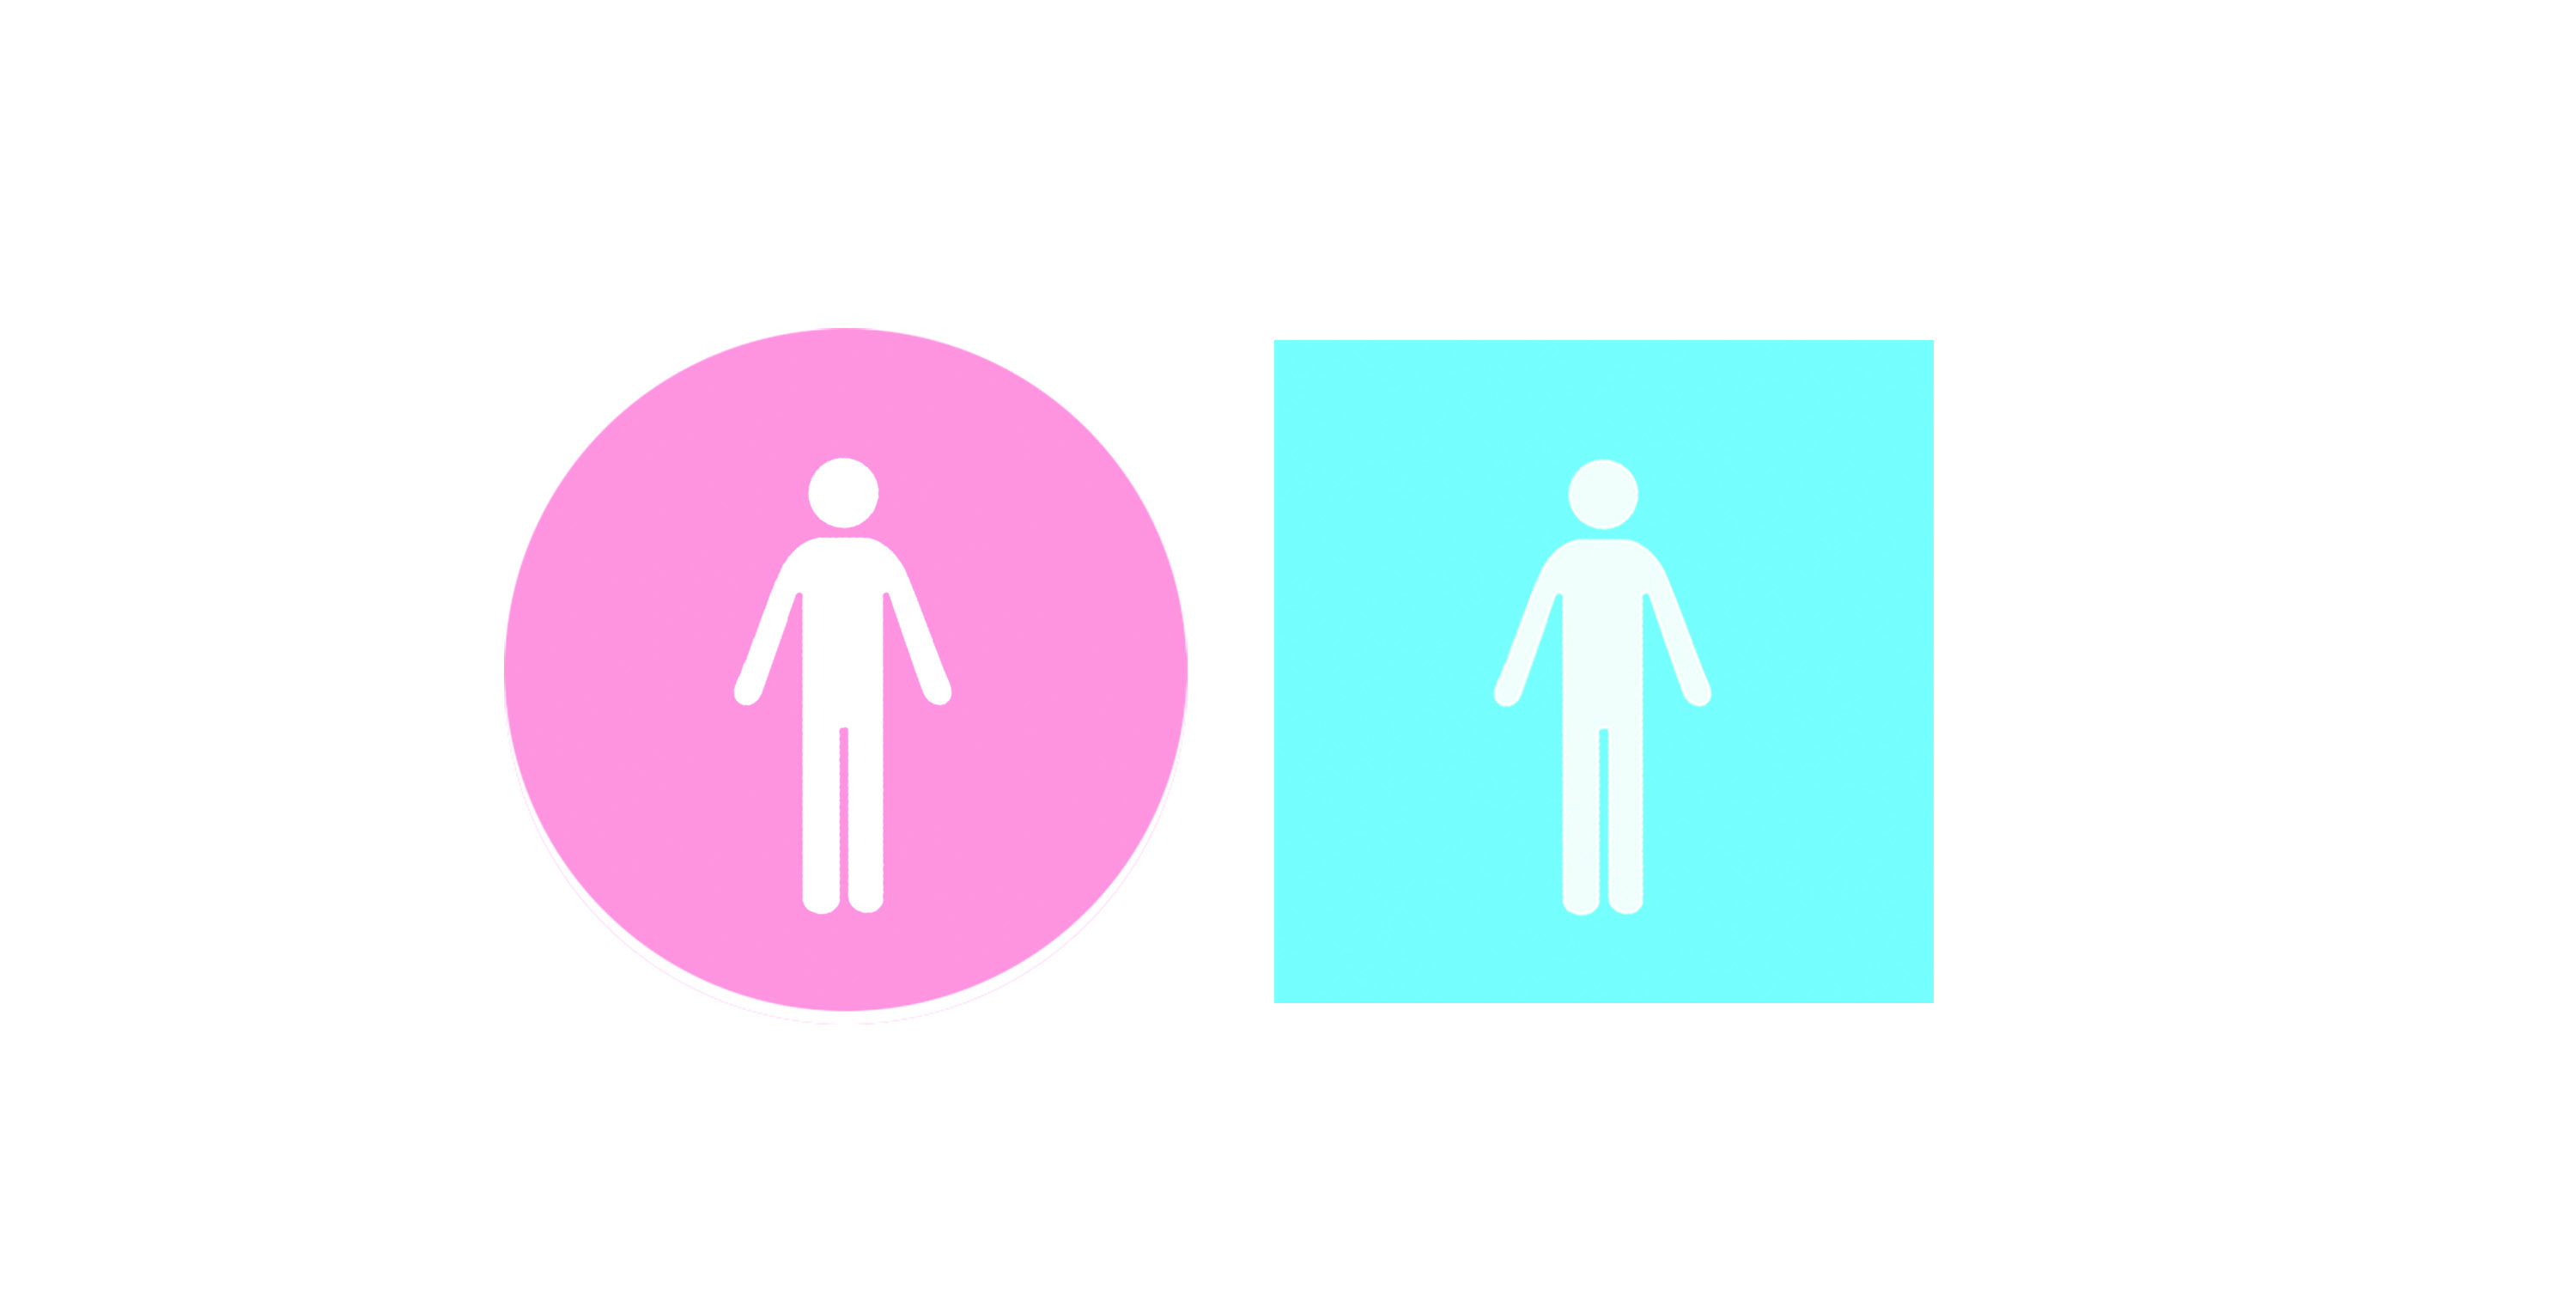 Figure 16.: Gender-friendly, Socially Symbolic, Indexical Restroom Signage Figures. By replacing the anticipated gender-marked restroom icons with a gender-neutral figure, our pre-conditioned tendency to automatically delineate between male and female is instead rewarded with the discovery that both figures are the same. Subverting the expectation for gender-marking becomes a socially symbolic act in gender neutrality. Source: Dobson, T. 2016.